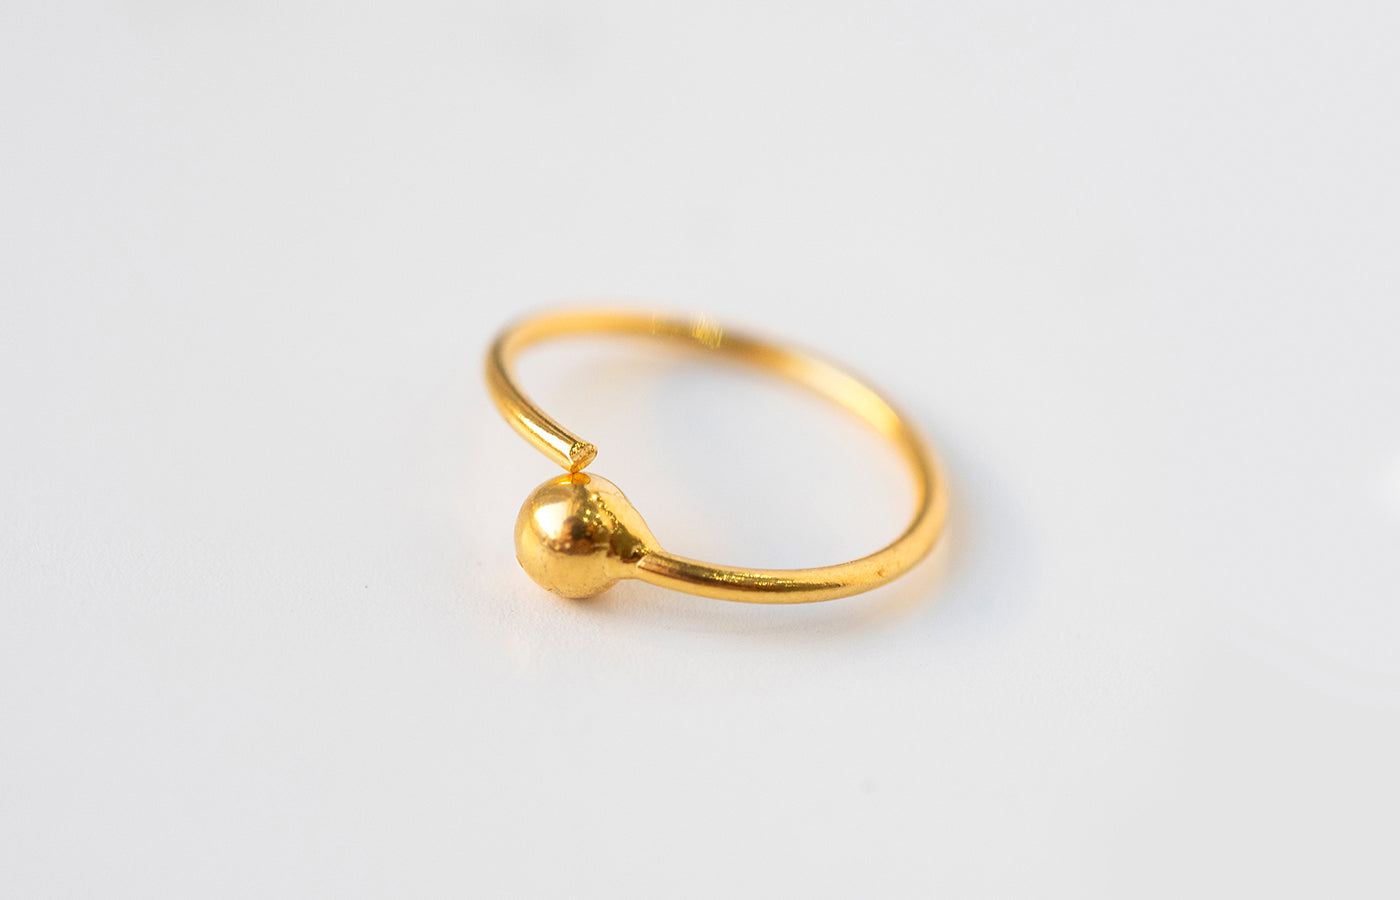 18ct Yellow Gold Nose Ring with bead NR-7578